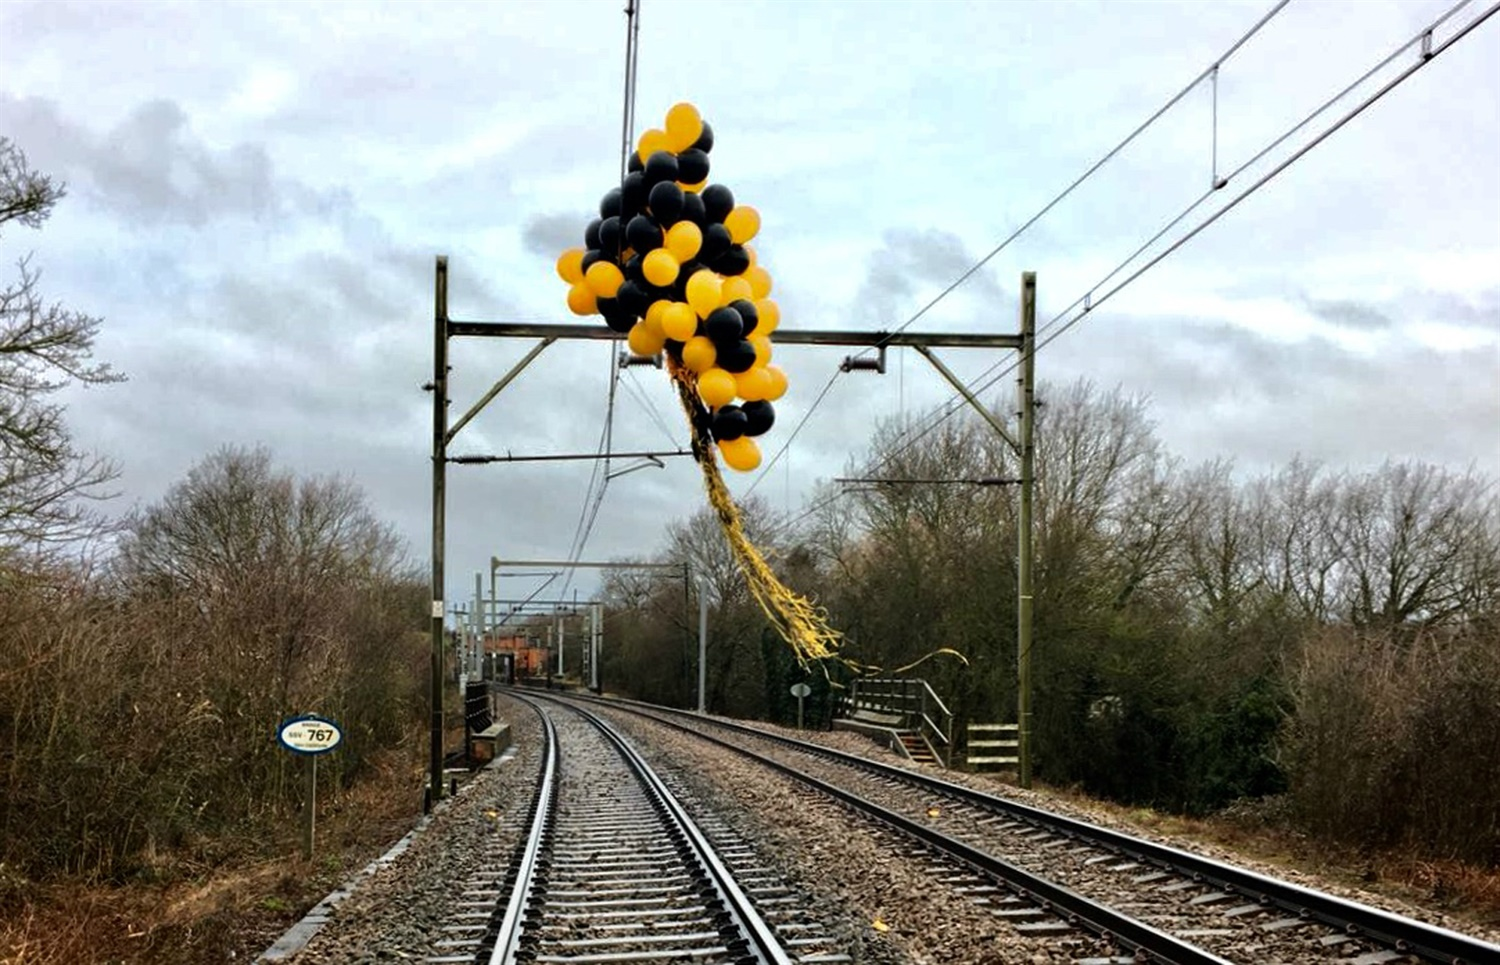 Helium balloons causing 'increasing number of train delays' at cost of £1m